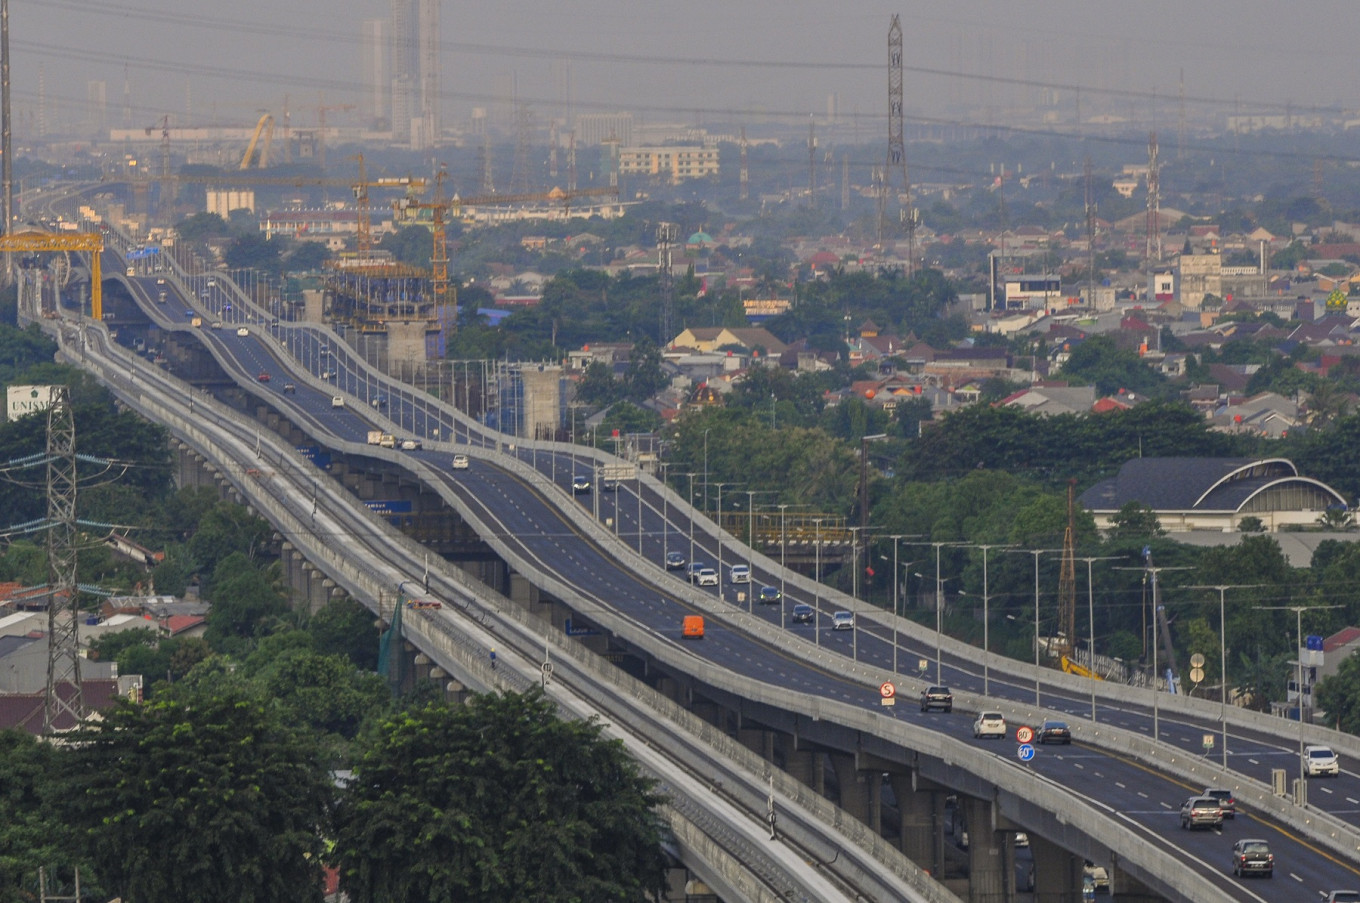 258 km of toll roads built in Indonesia in 2020, short of target